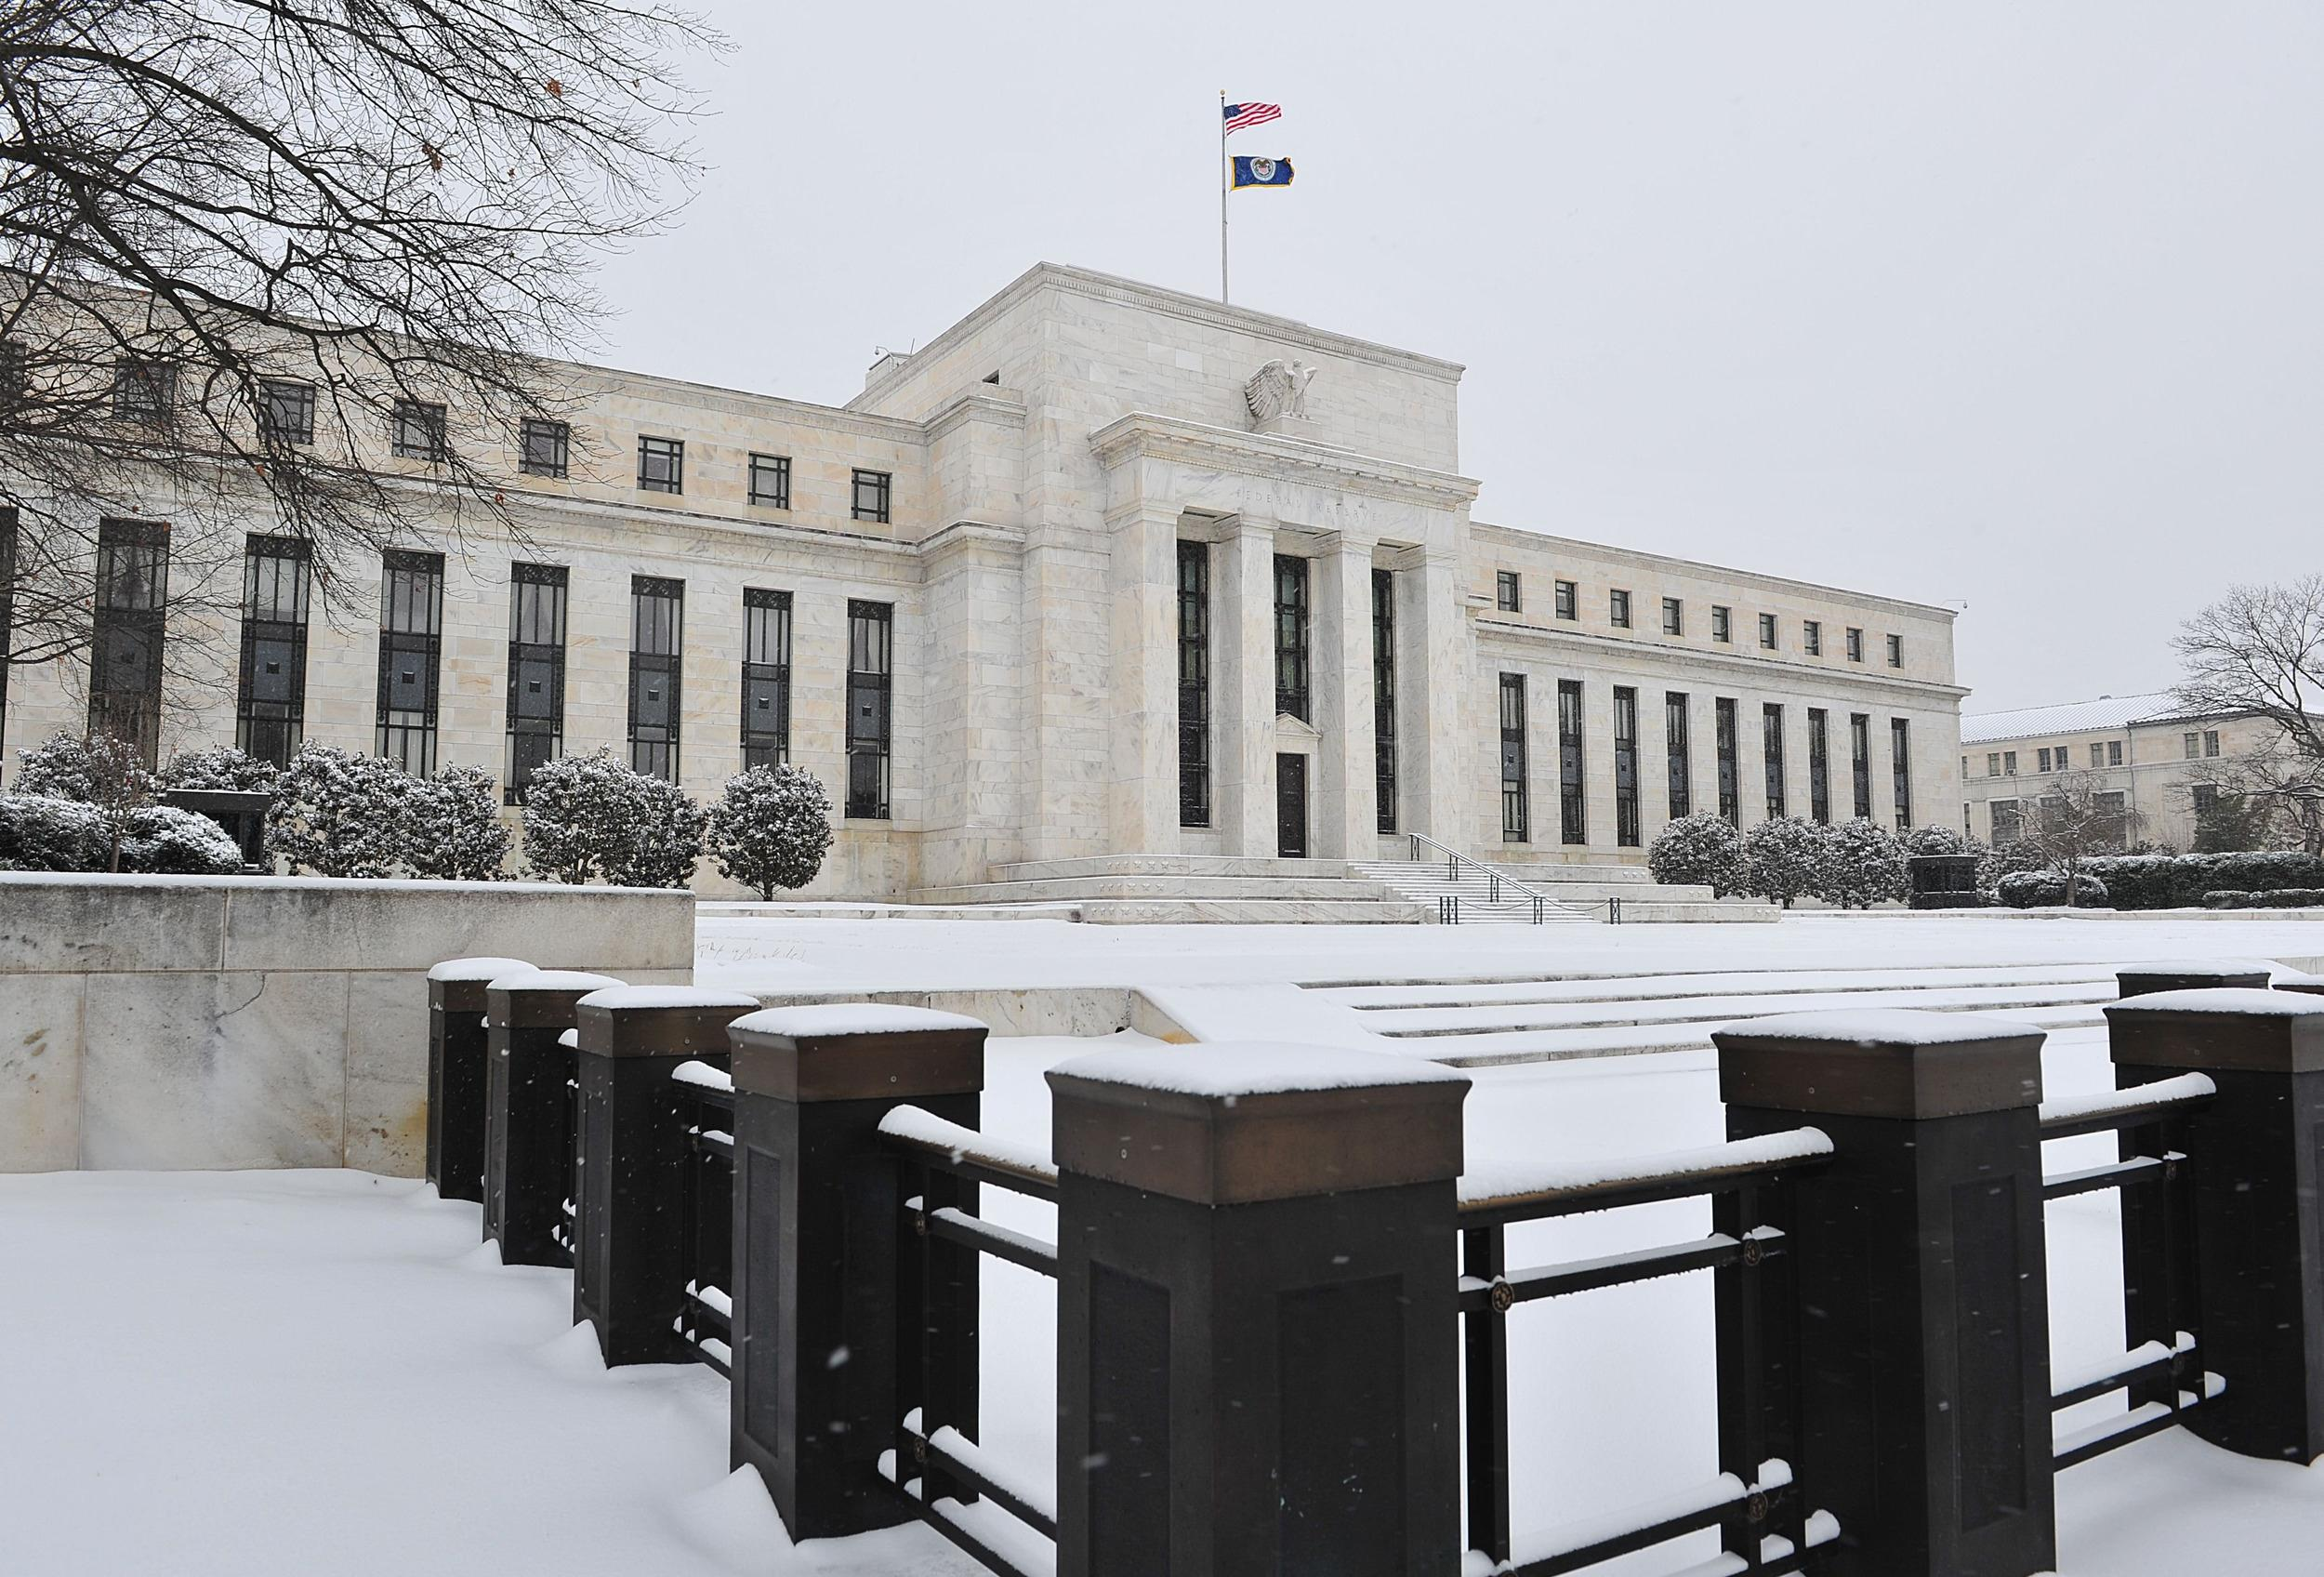 The Federal Reserve is seen during a snow storm. Severe winter weather hit economic activity in January and early February, the central bank said.